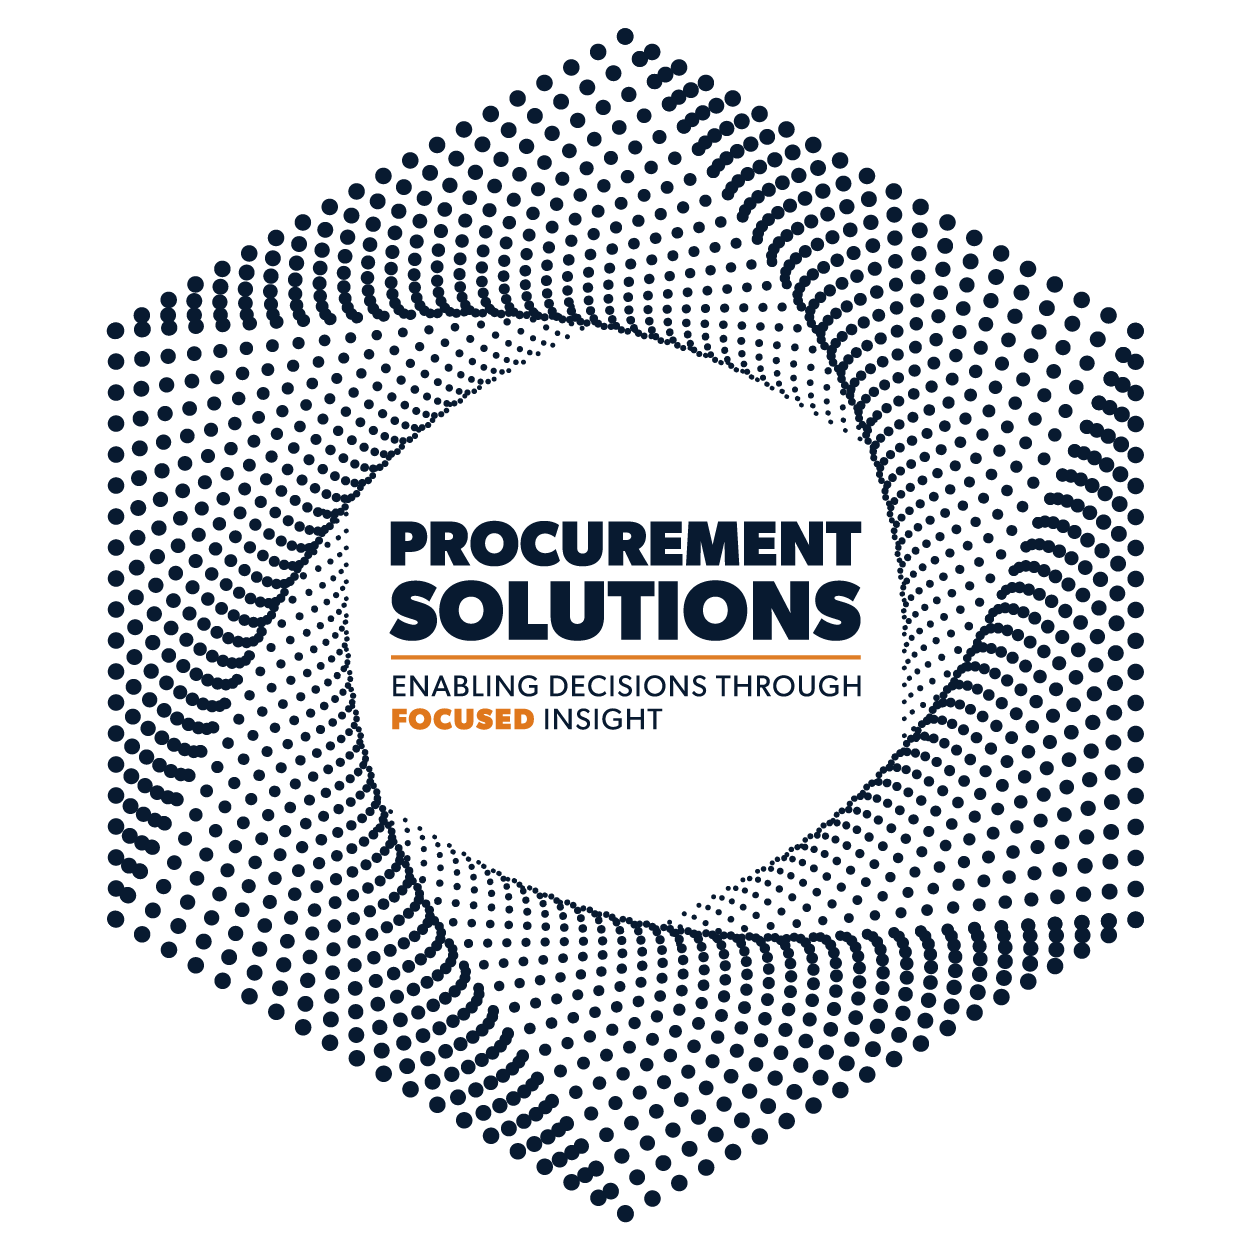 Allegis Global Solutions | Procurement Solutions